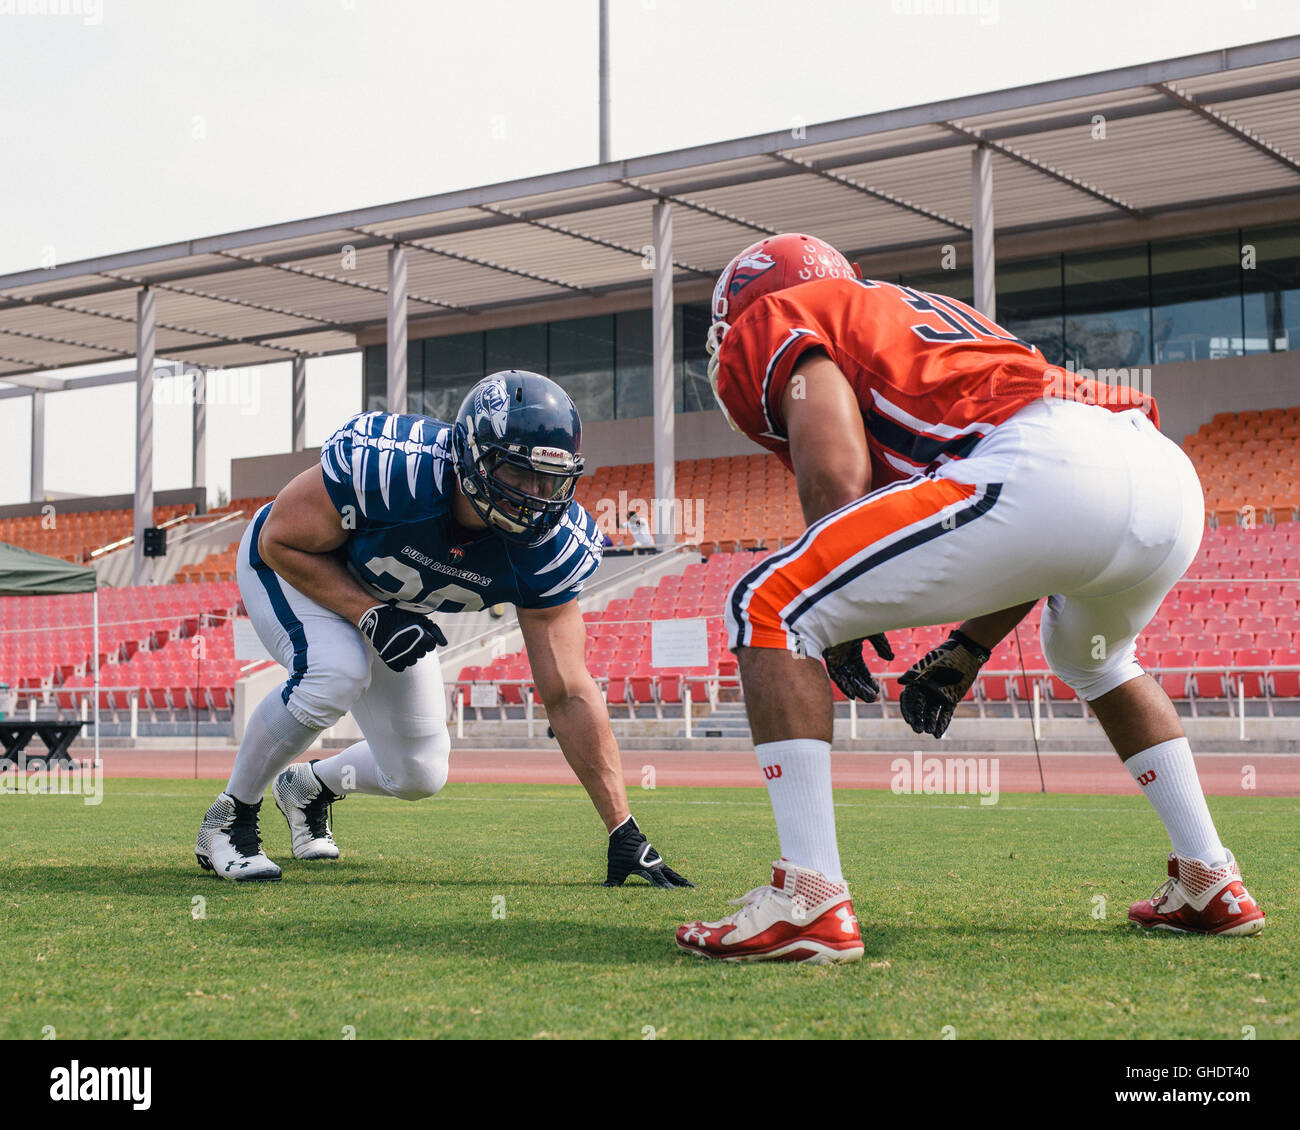 American football players face off during a training session. - Stock Image